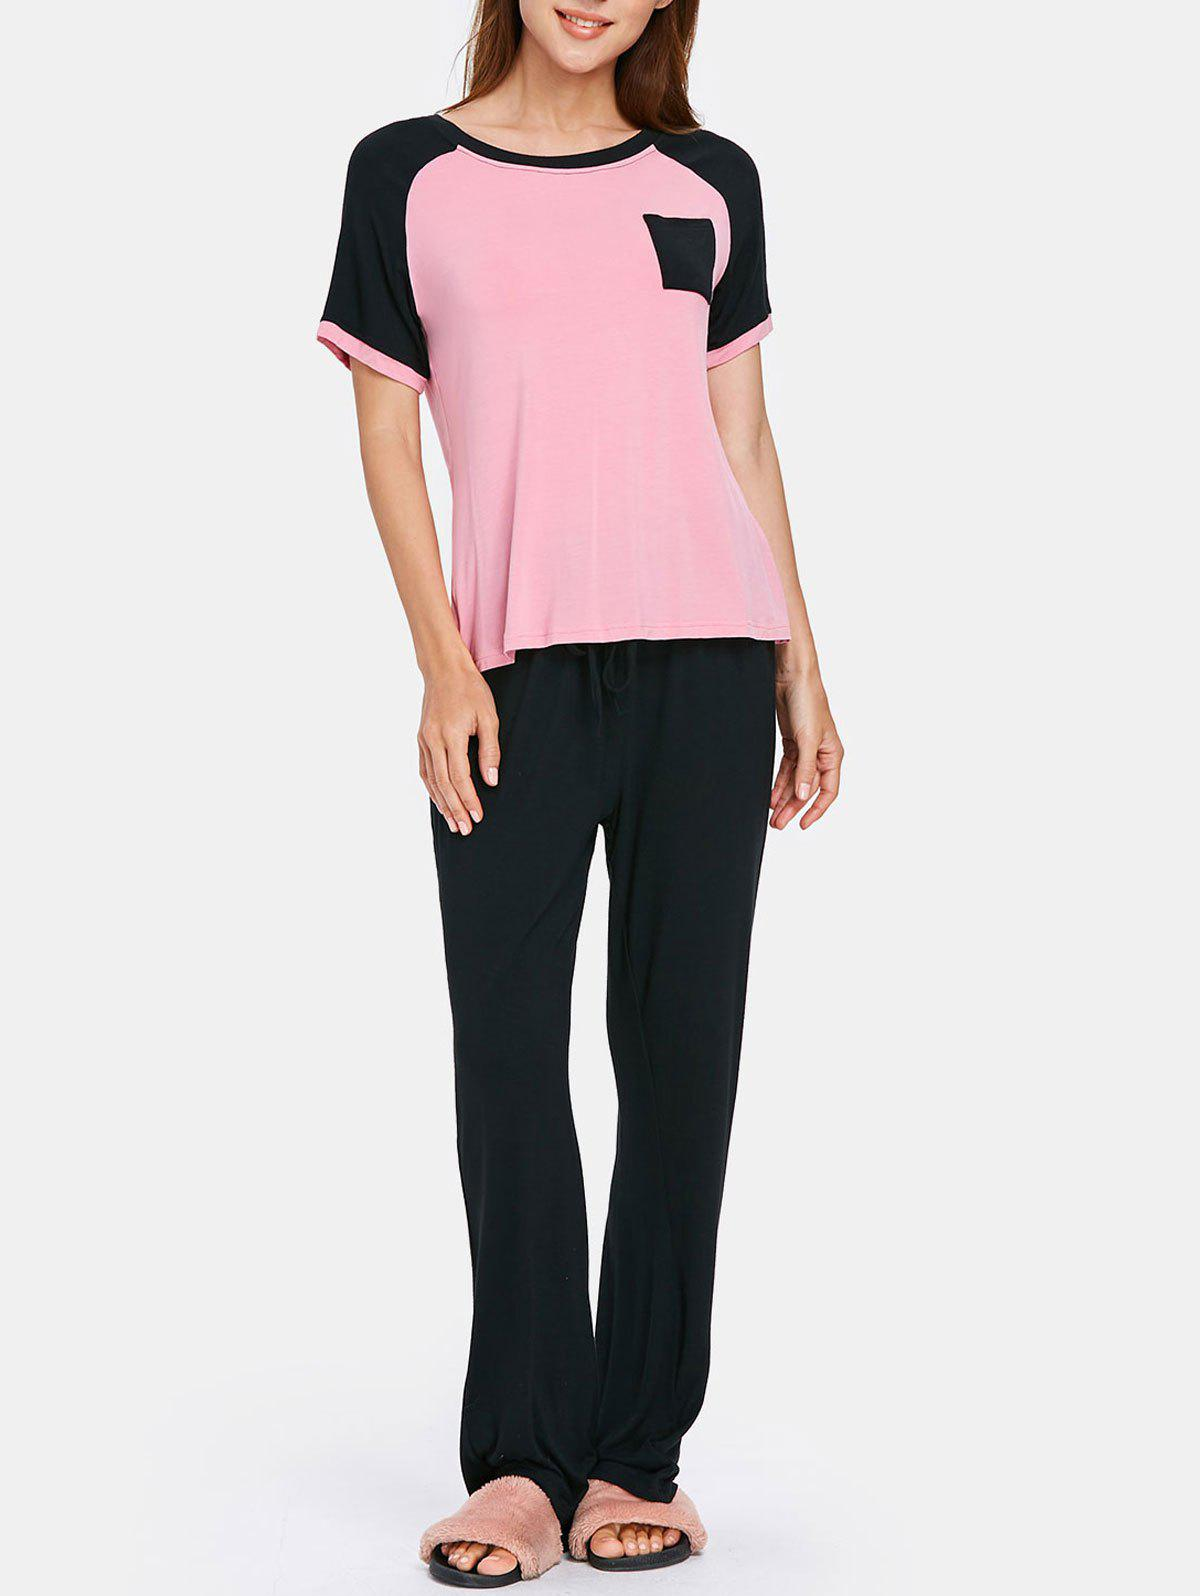 Baseball Tee with Drawstring Pants Pajamas Set - PINK BUBBLEGUM L